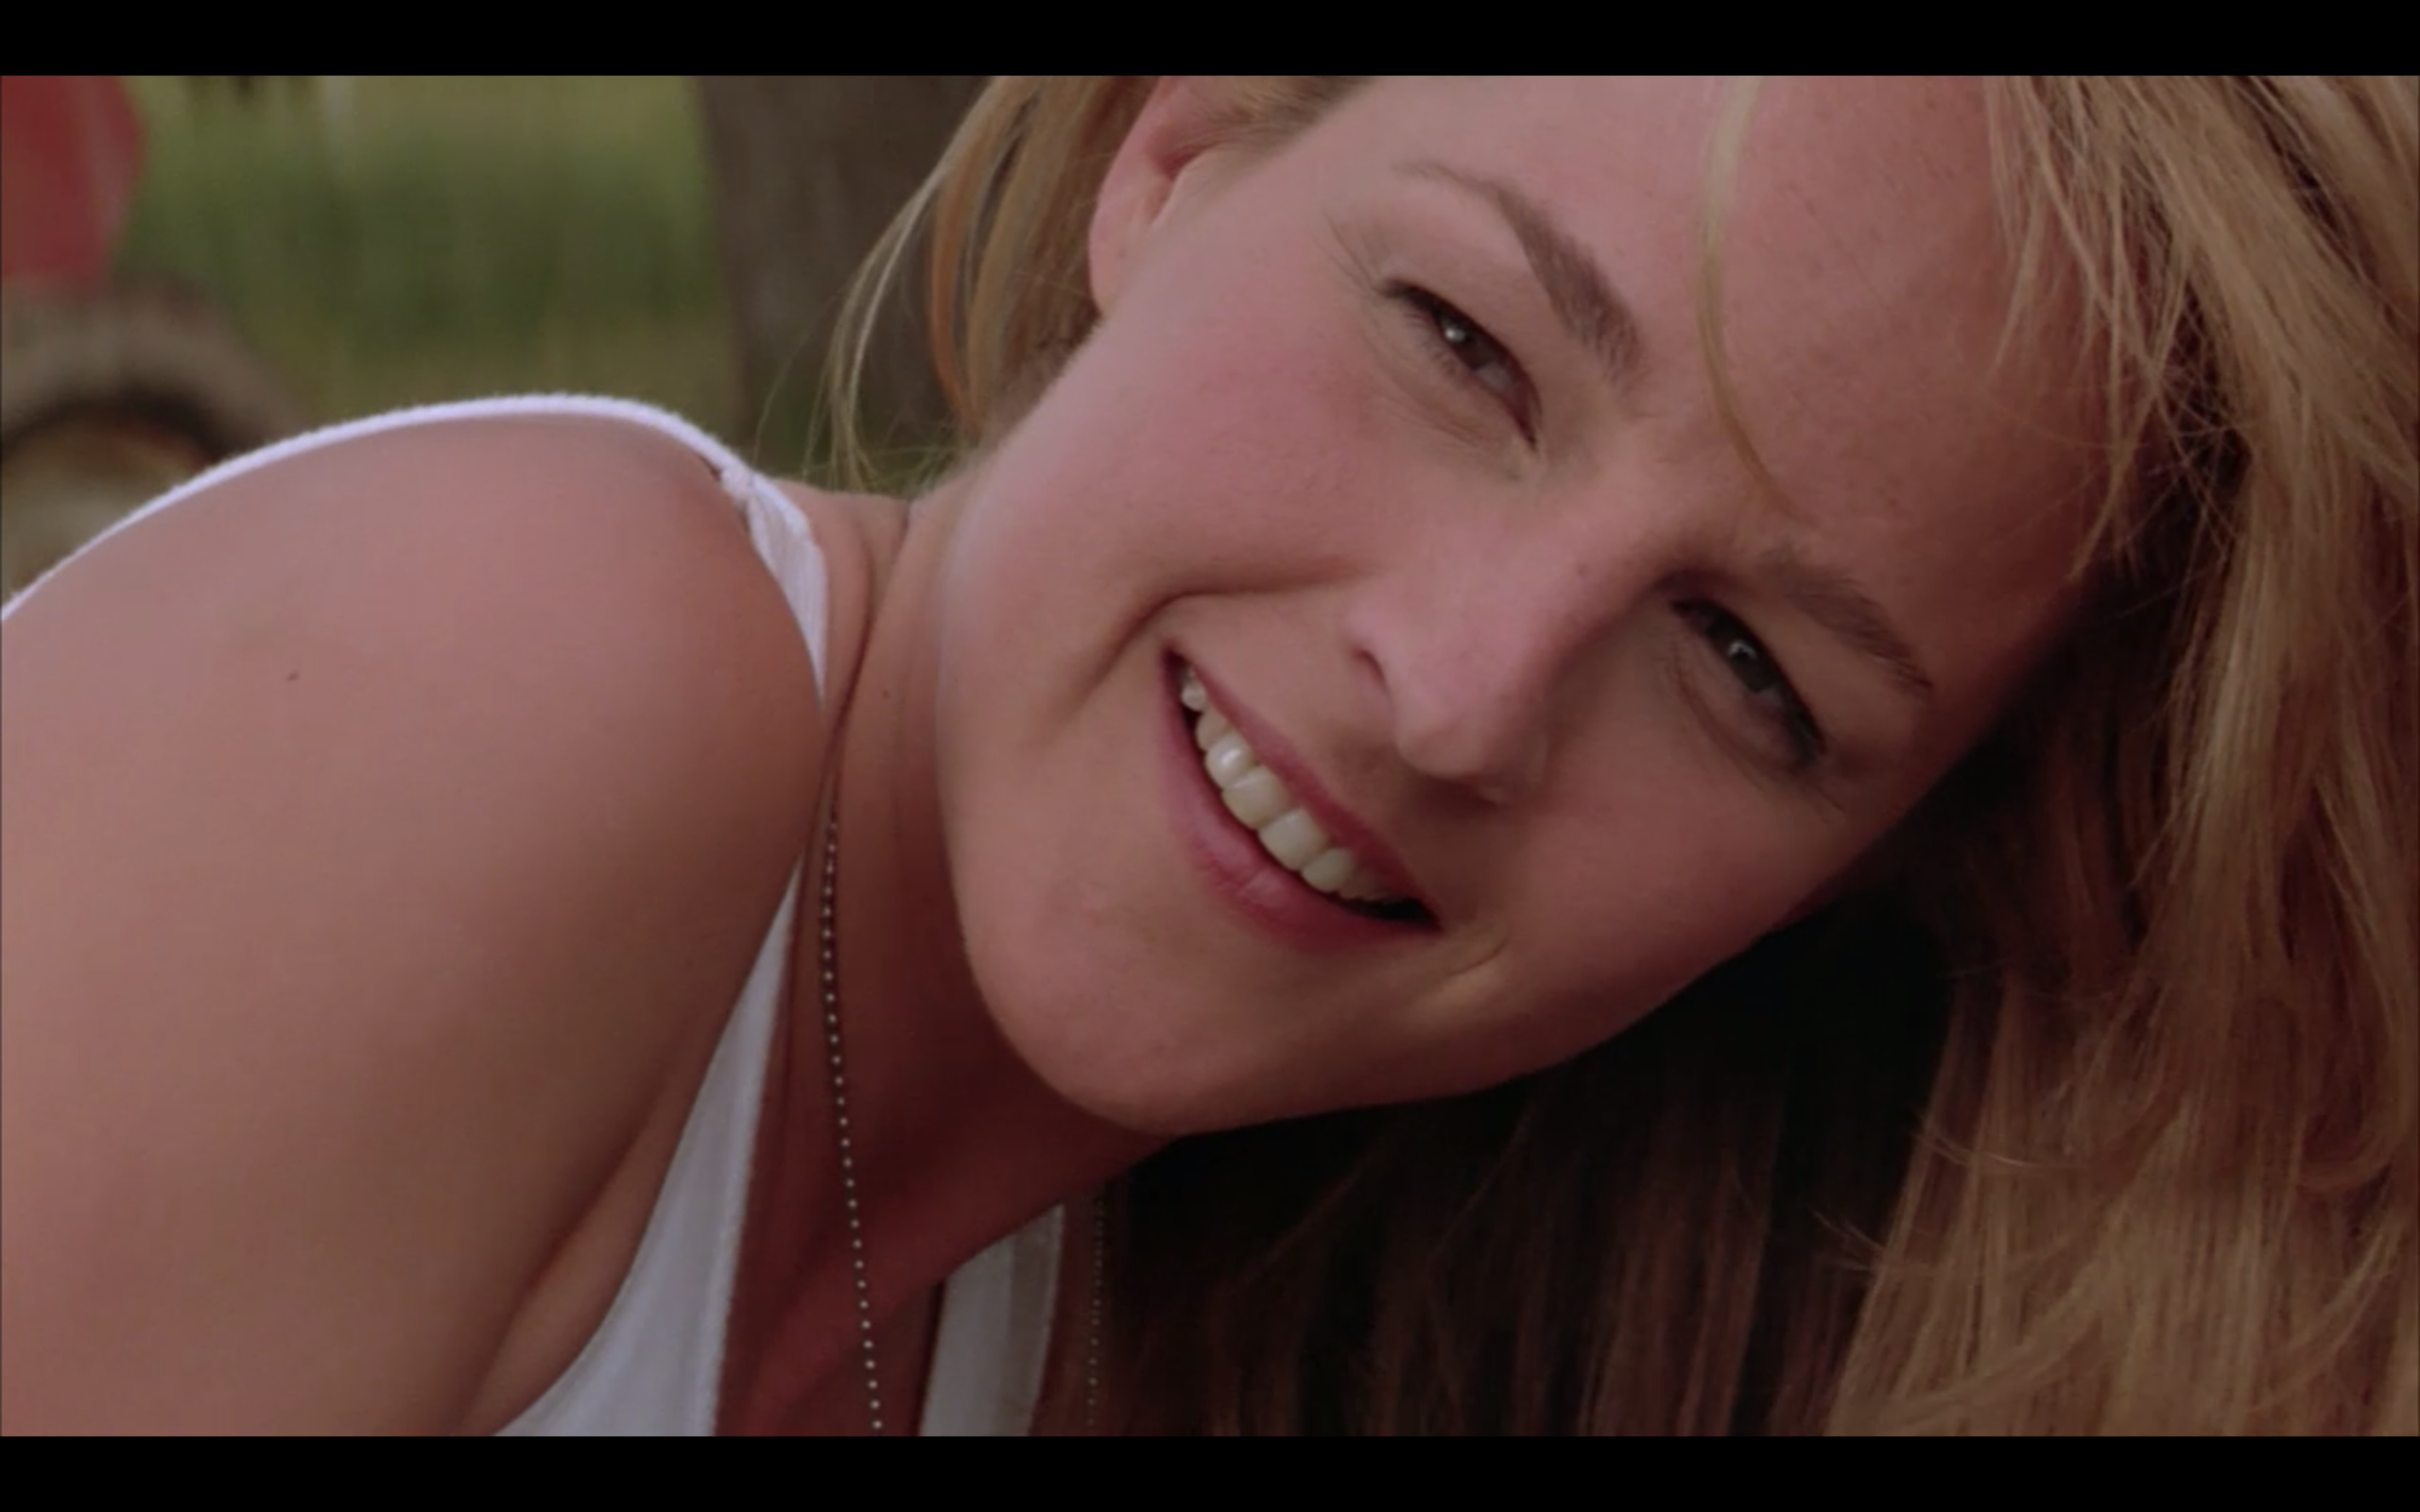 Helen Hunt S Iconic White Tank Top In Twister Taught Me Everything I Know About Work Life Balance By Maylin Tu Medium